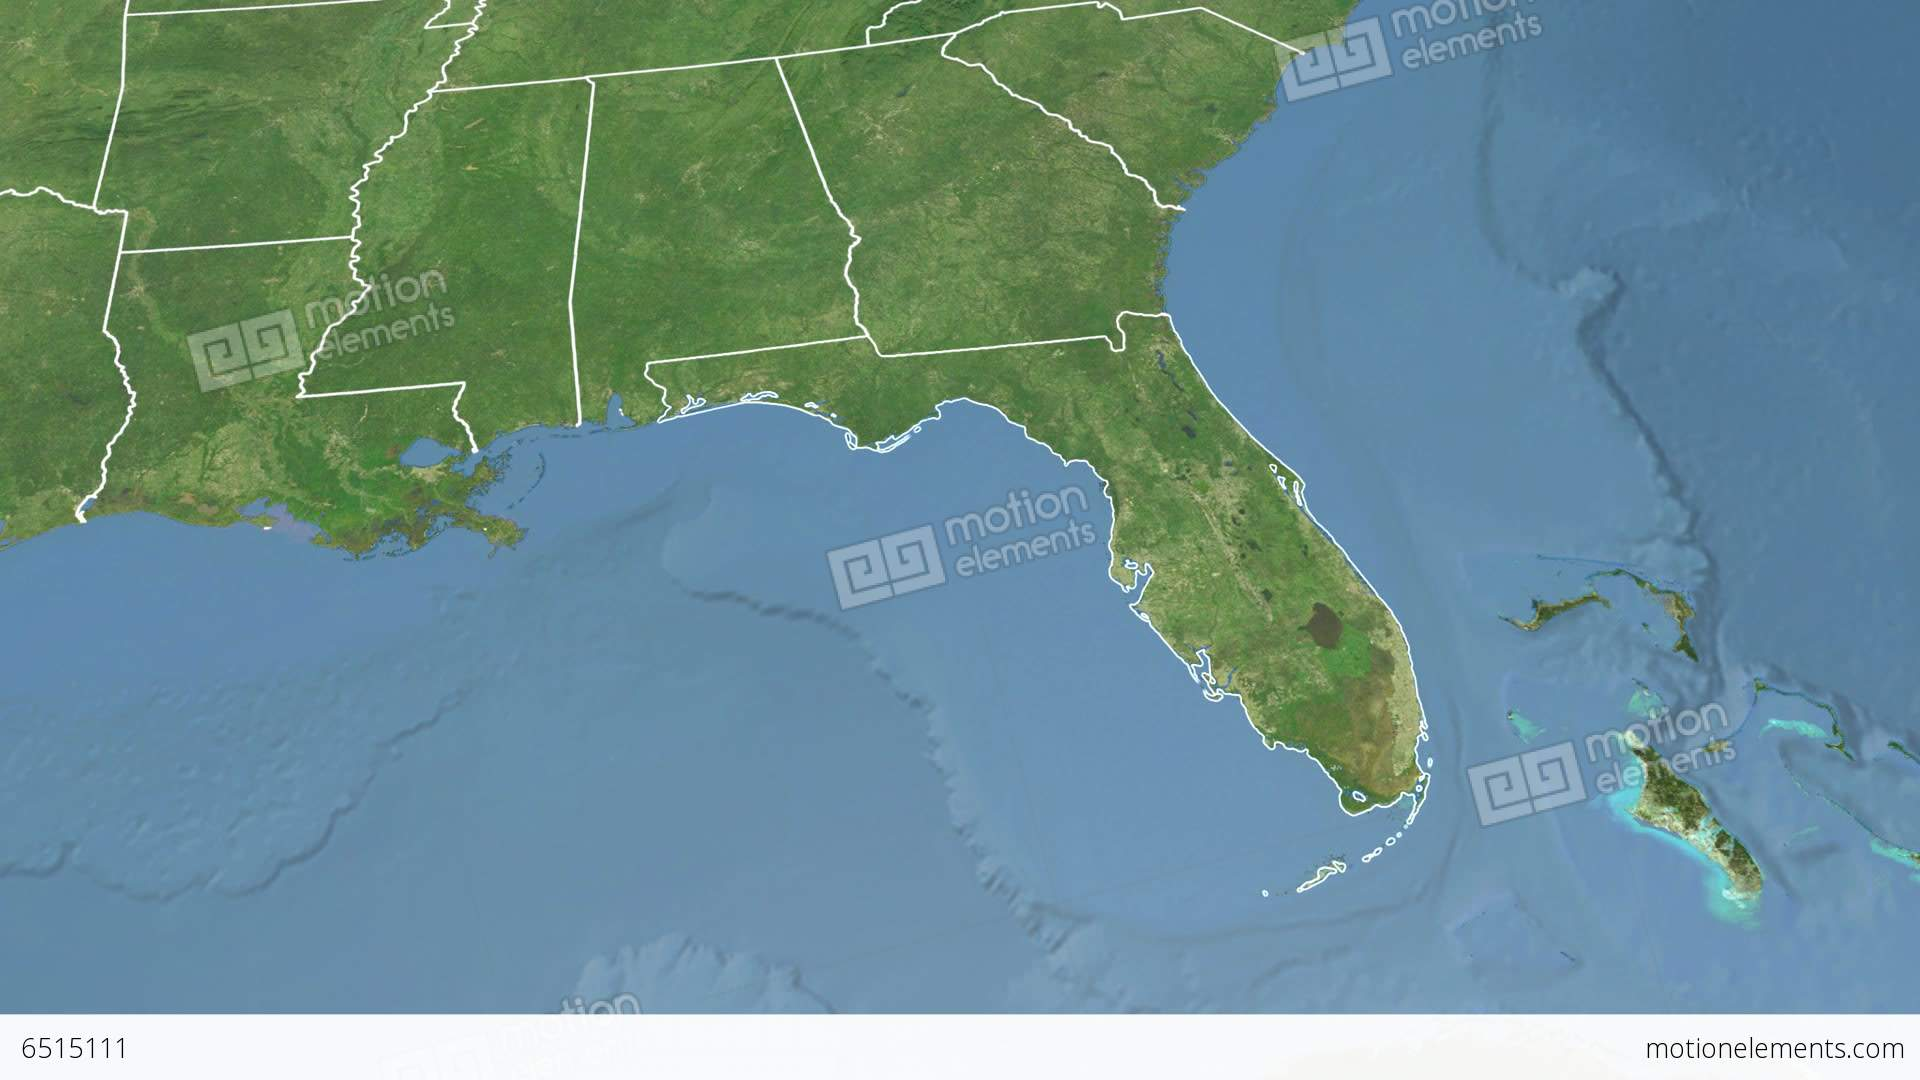 State Of Florida Satellite Image: Florida State Usa Extruded ... on dunnellon fl on map of florida, computer map of florida, flood map of florida, google maps florida, live satellite map florida, traffic map of florida, telephone map of florida, map map of florida, view of tampa florida, marine map of florida, live radar weather map florida, full large map of florida, ups map florida, transportation of florida, detailed map of florida, hd map of florida, aerial of florida, drought map of florida, digital map of florida, satellite view of orlando,